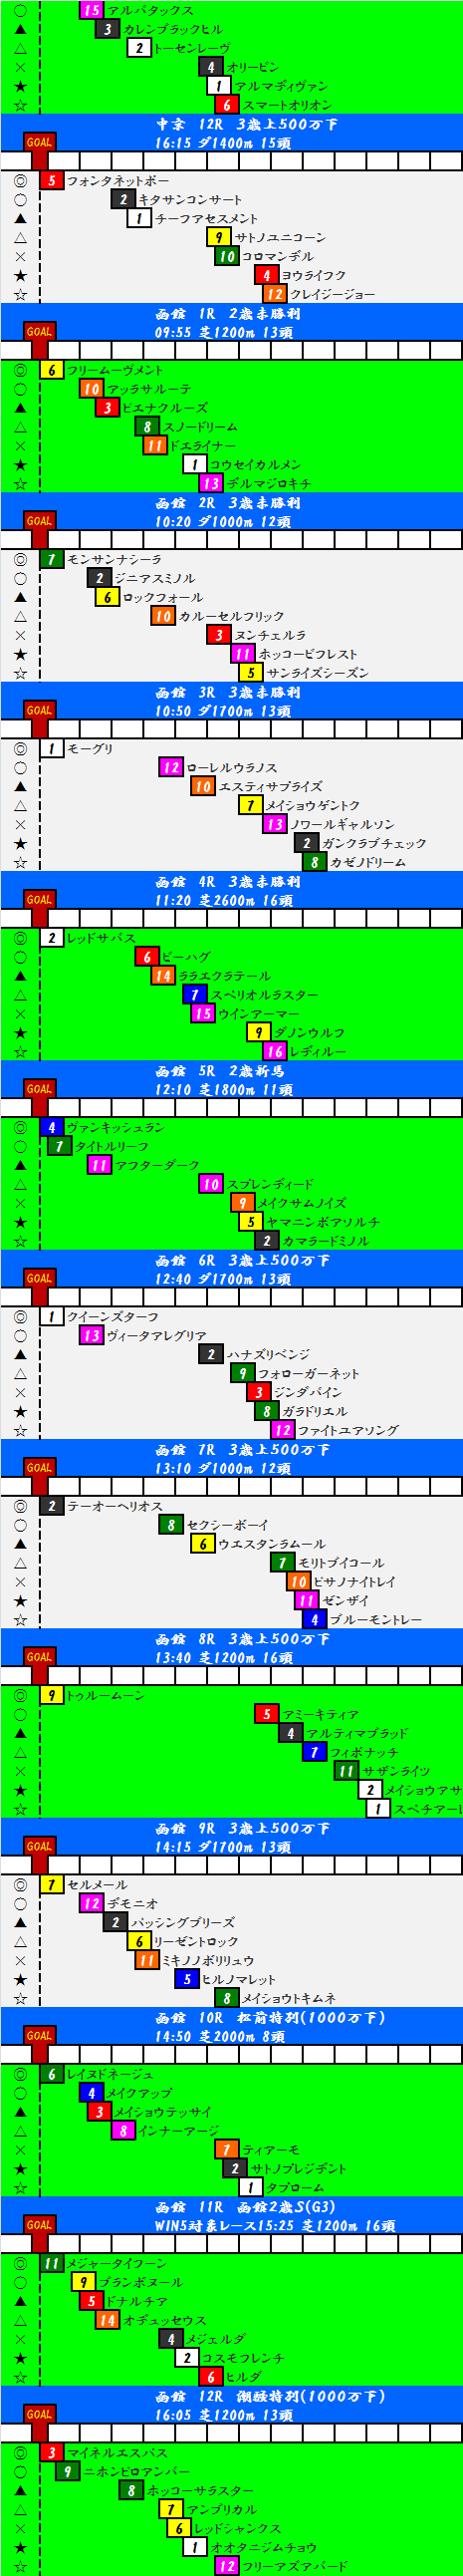 2015072602.png